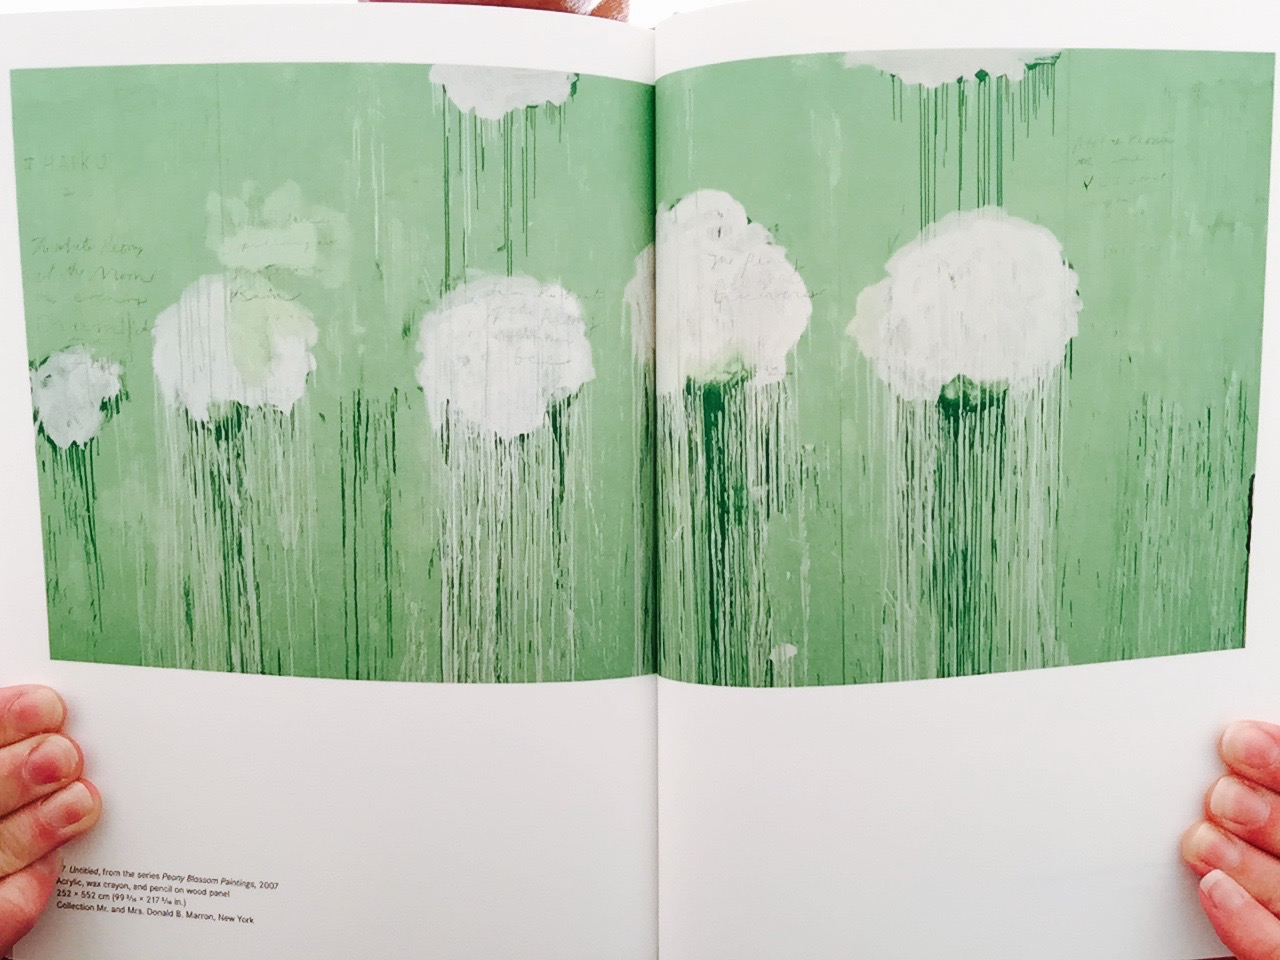 Twombly8